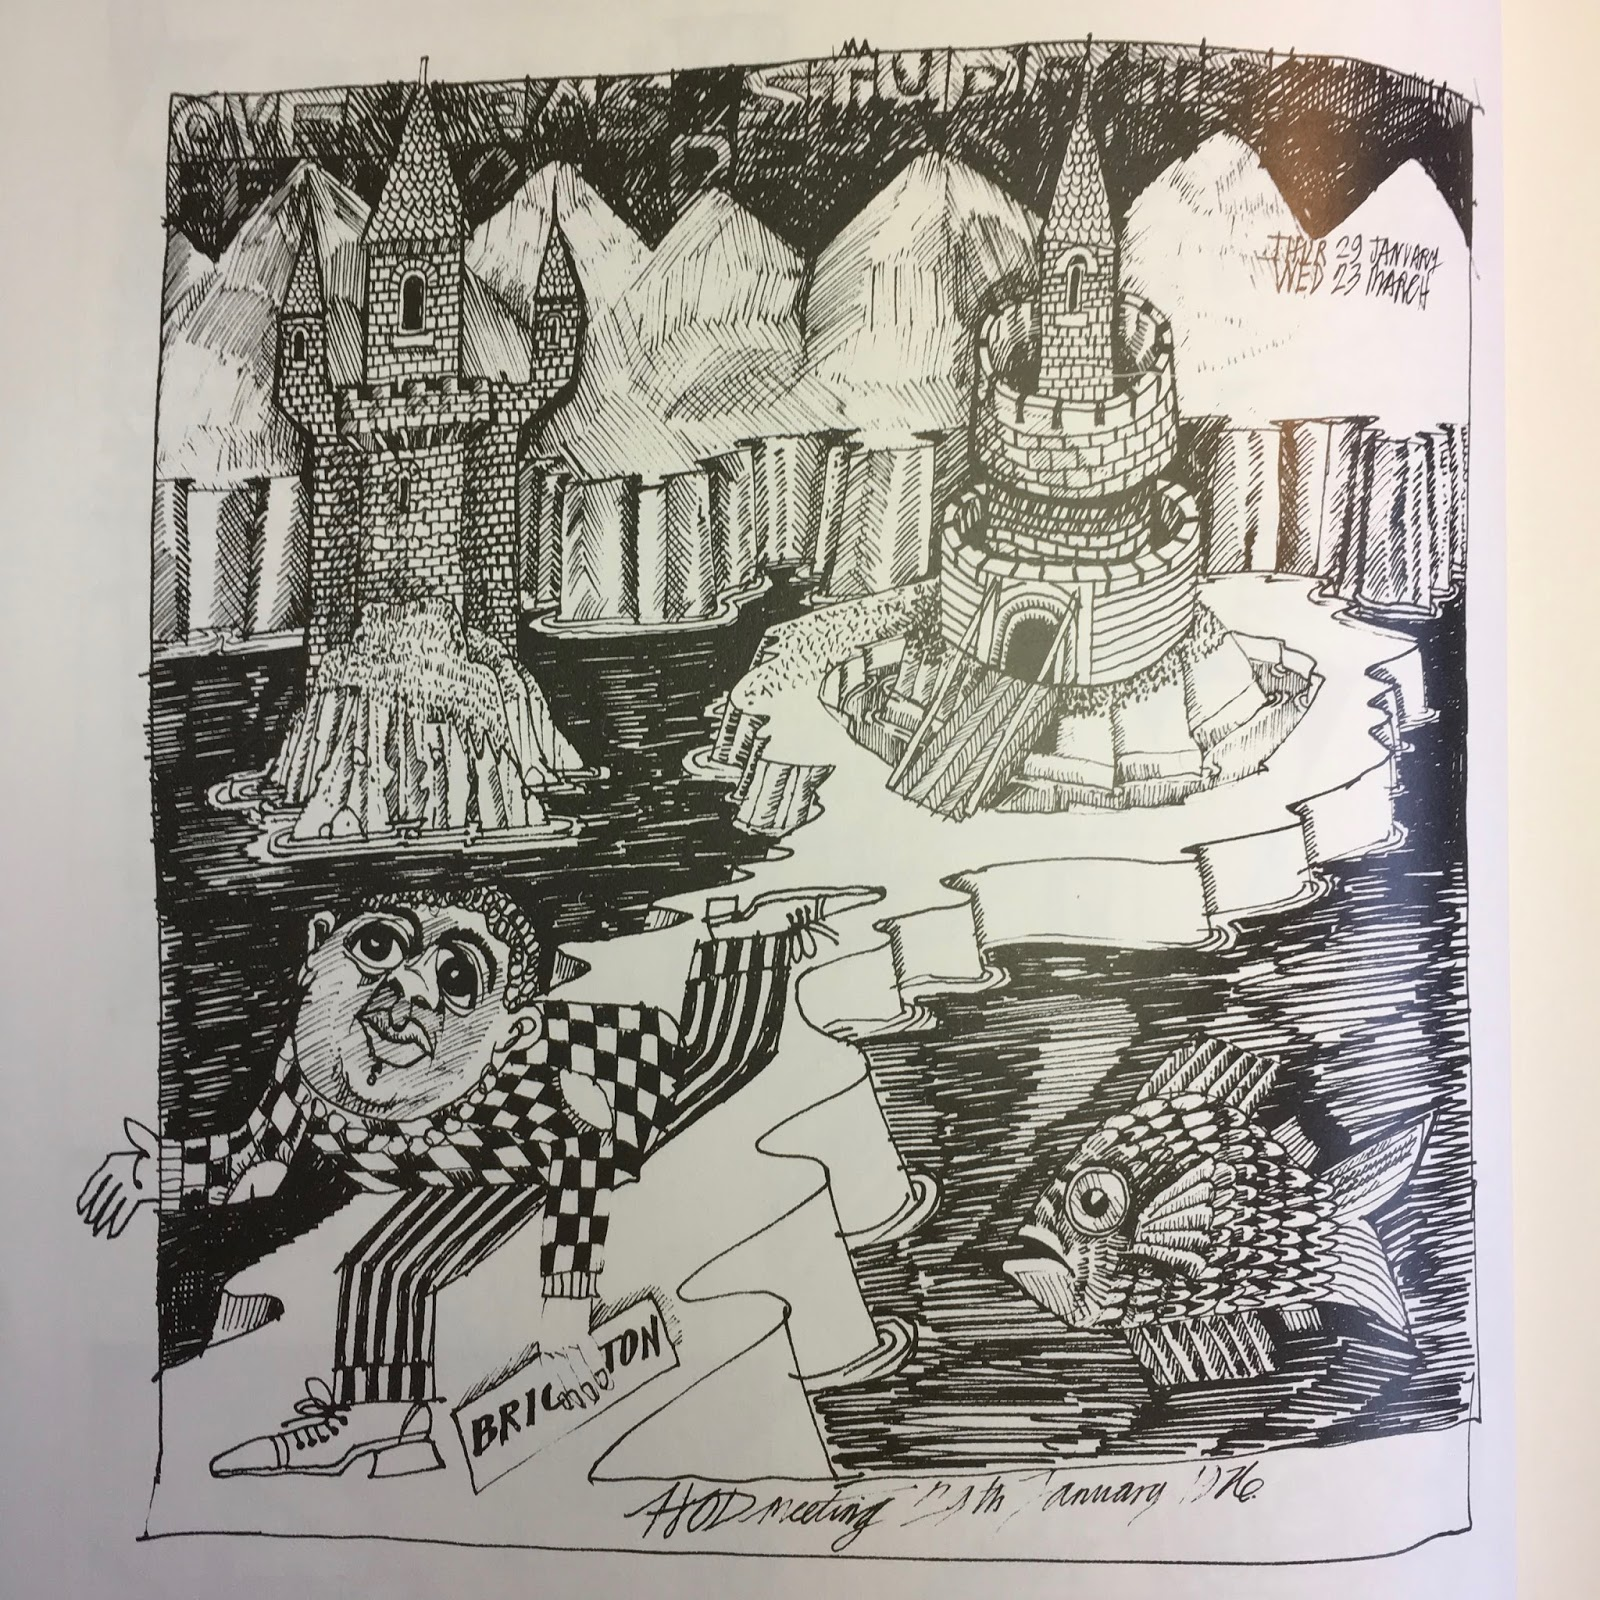 John Vernon Lord Man Flees From An Island A Doodle Carried Out